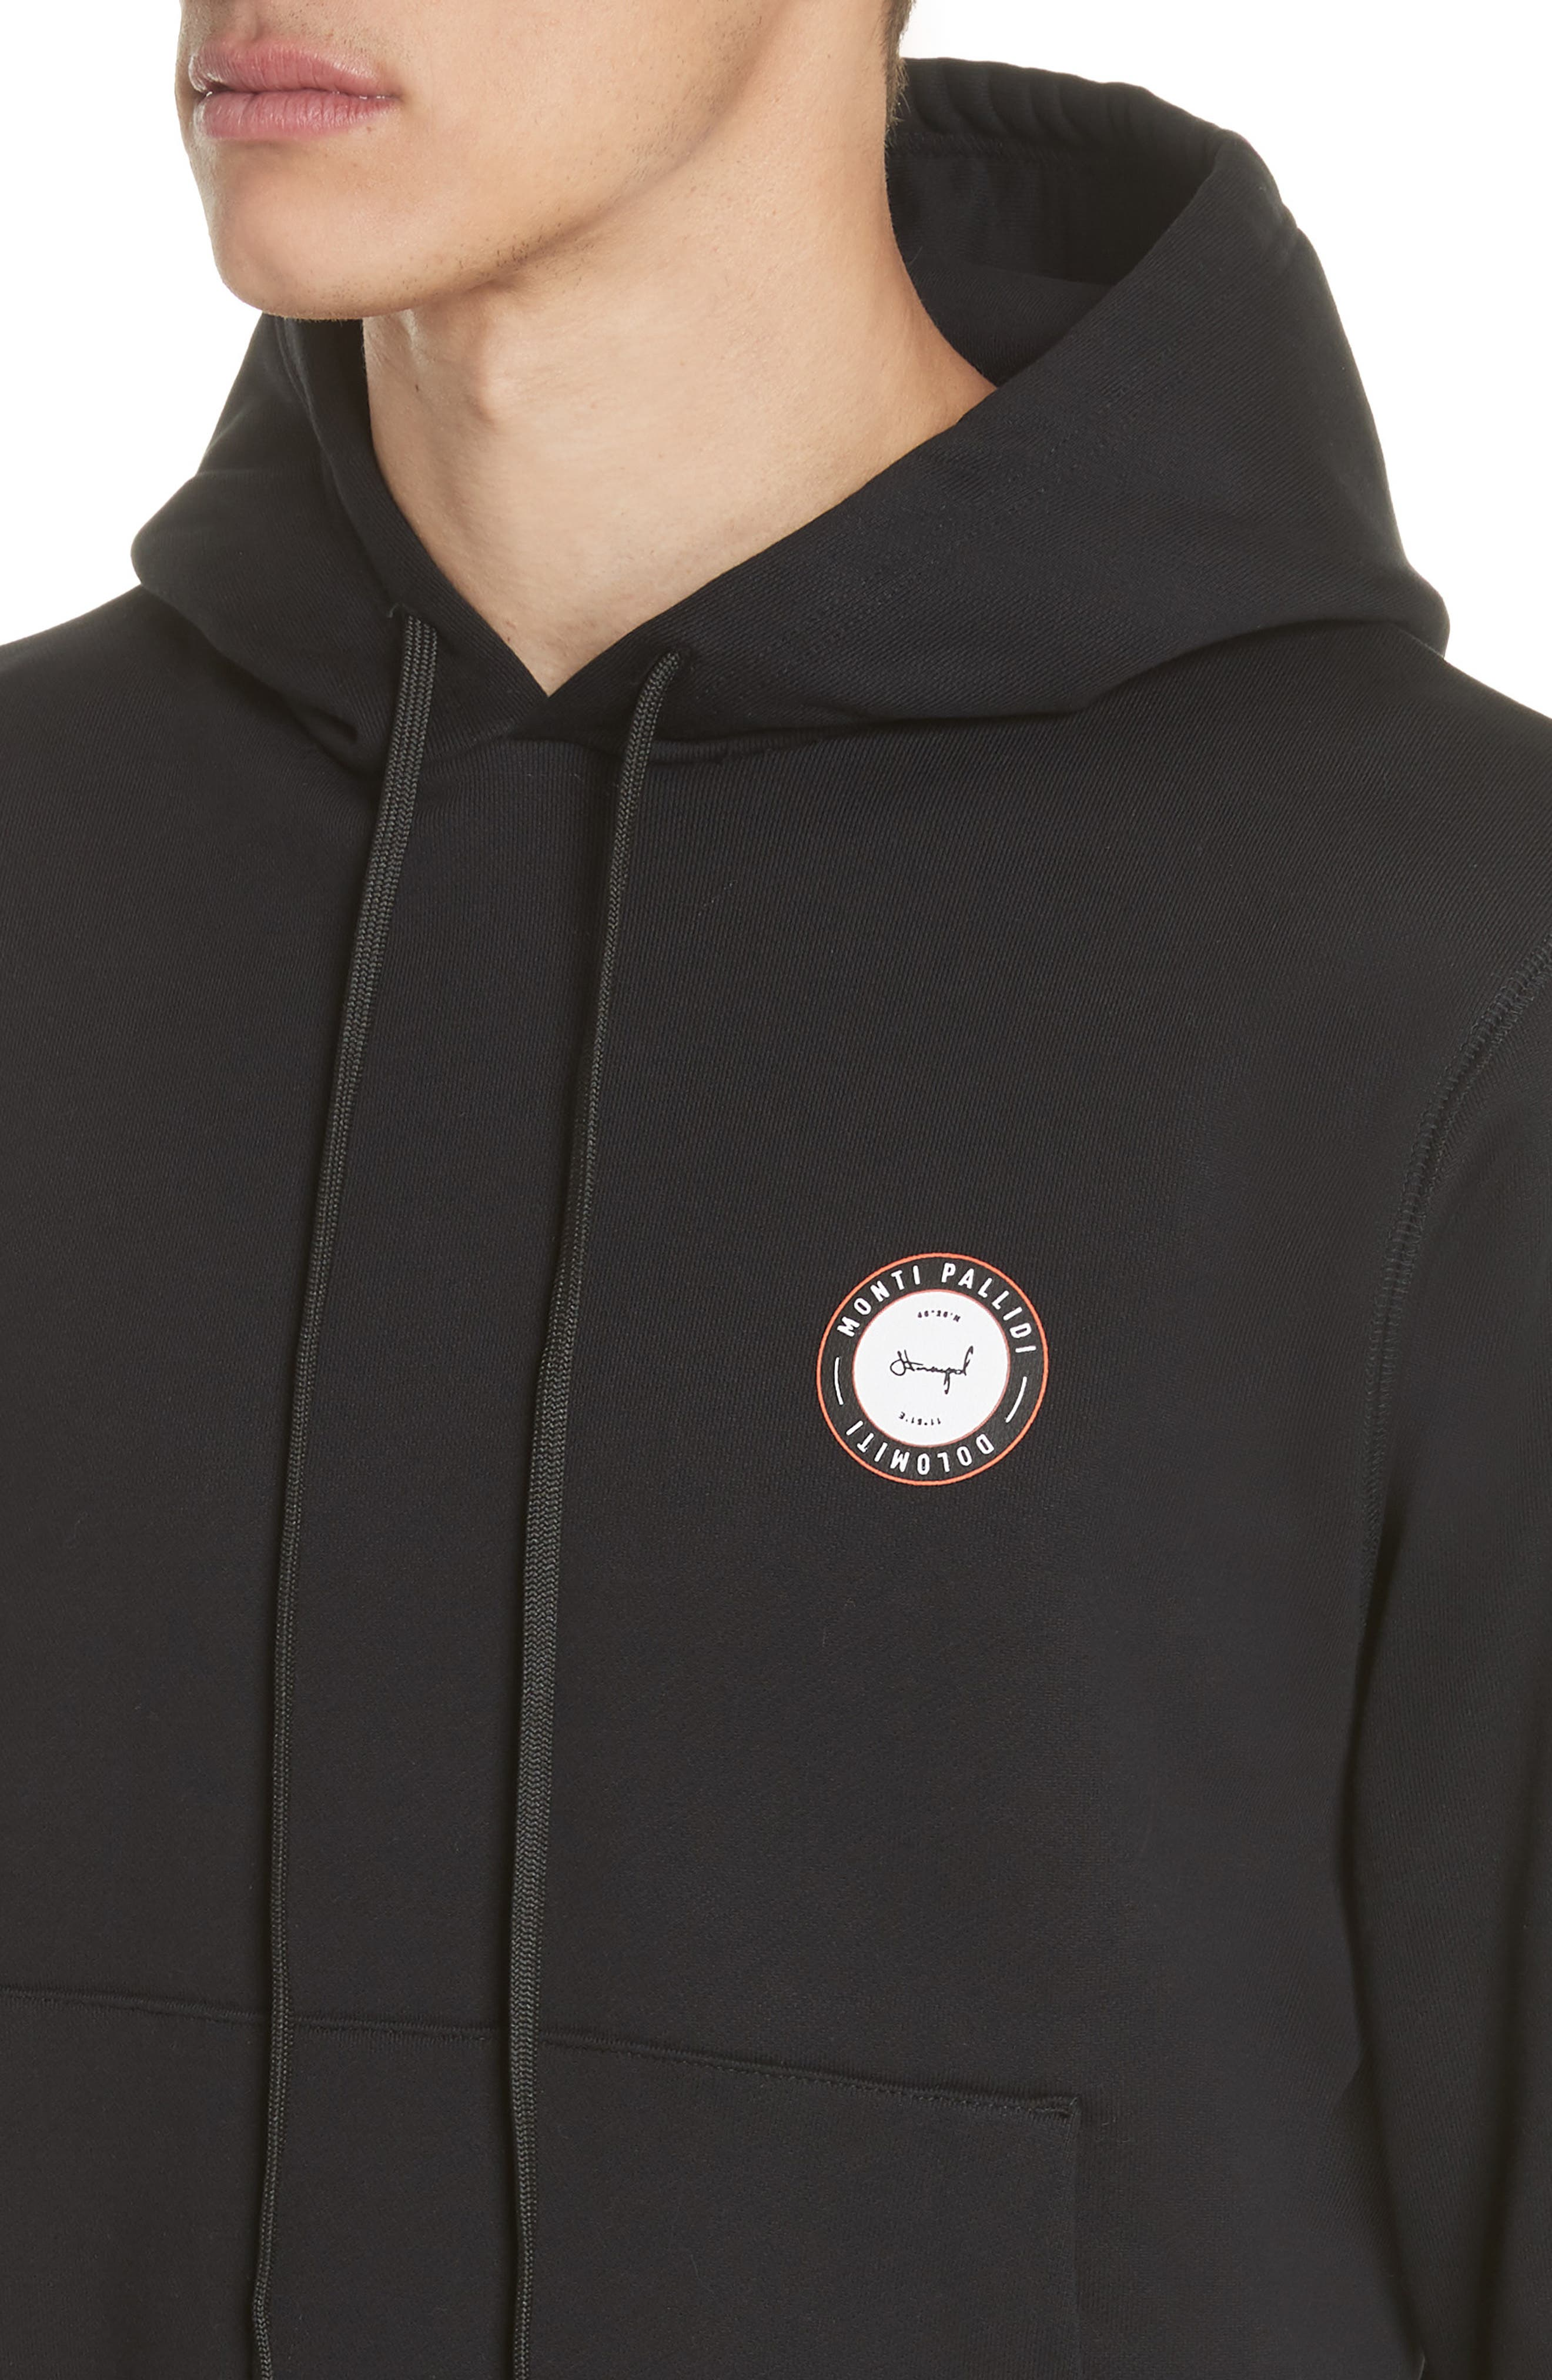 Monti Pallidi Graphic Hoodie,                             Alternate thumbnail 4, color,                             001